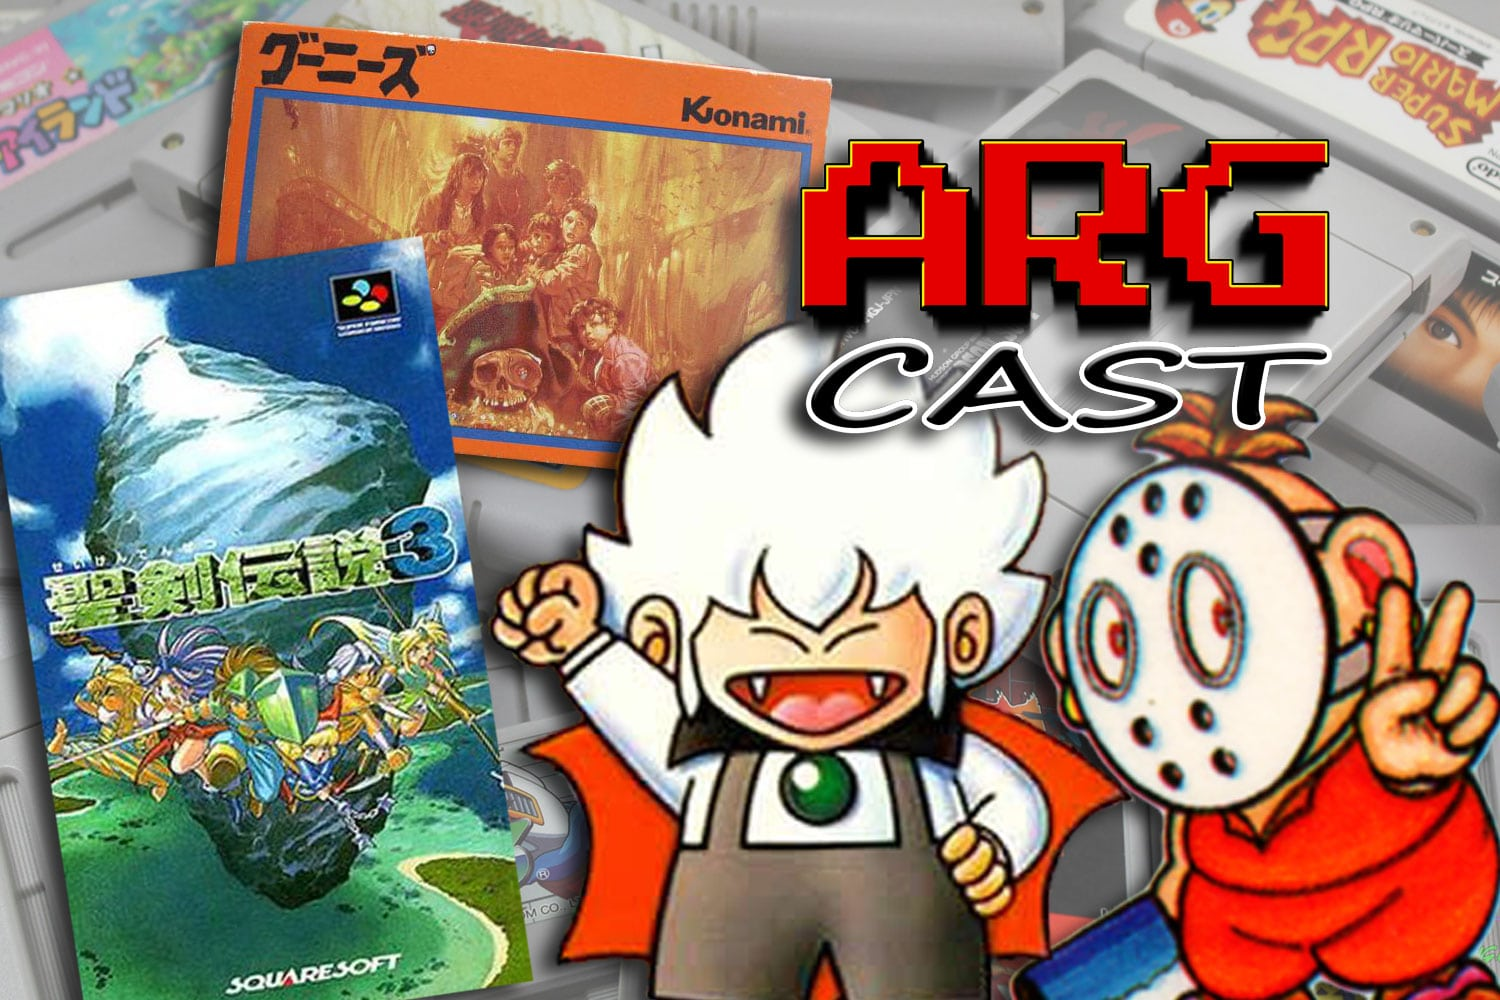 ARGcast #129: Famicom and Super Famicom Games with Andre Tipton